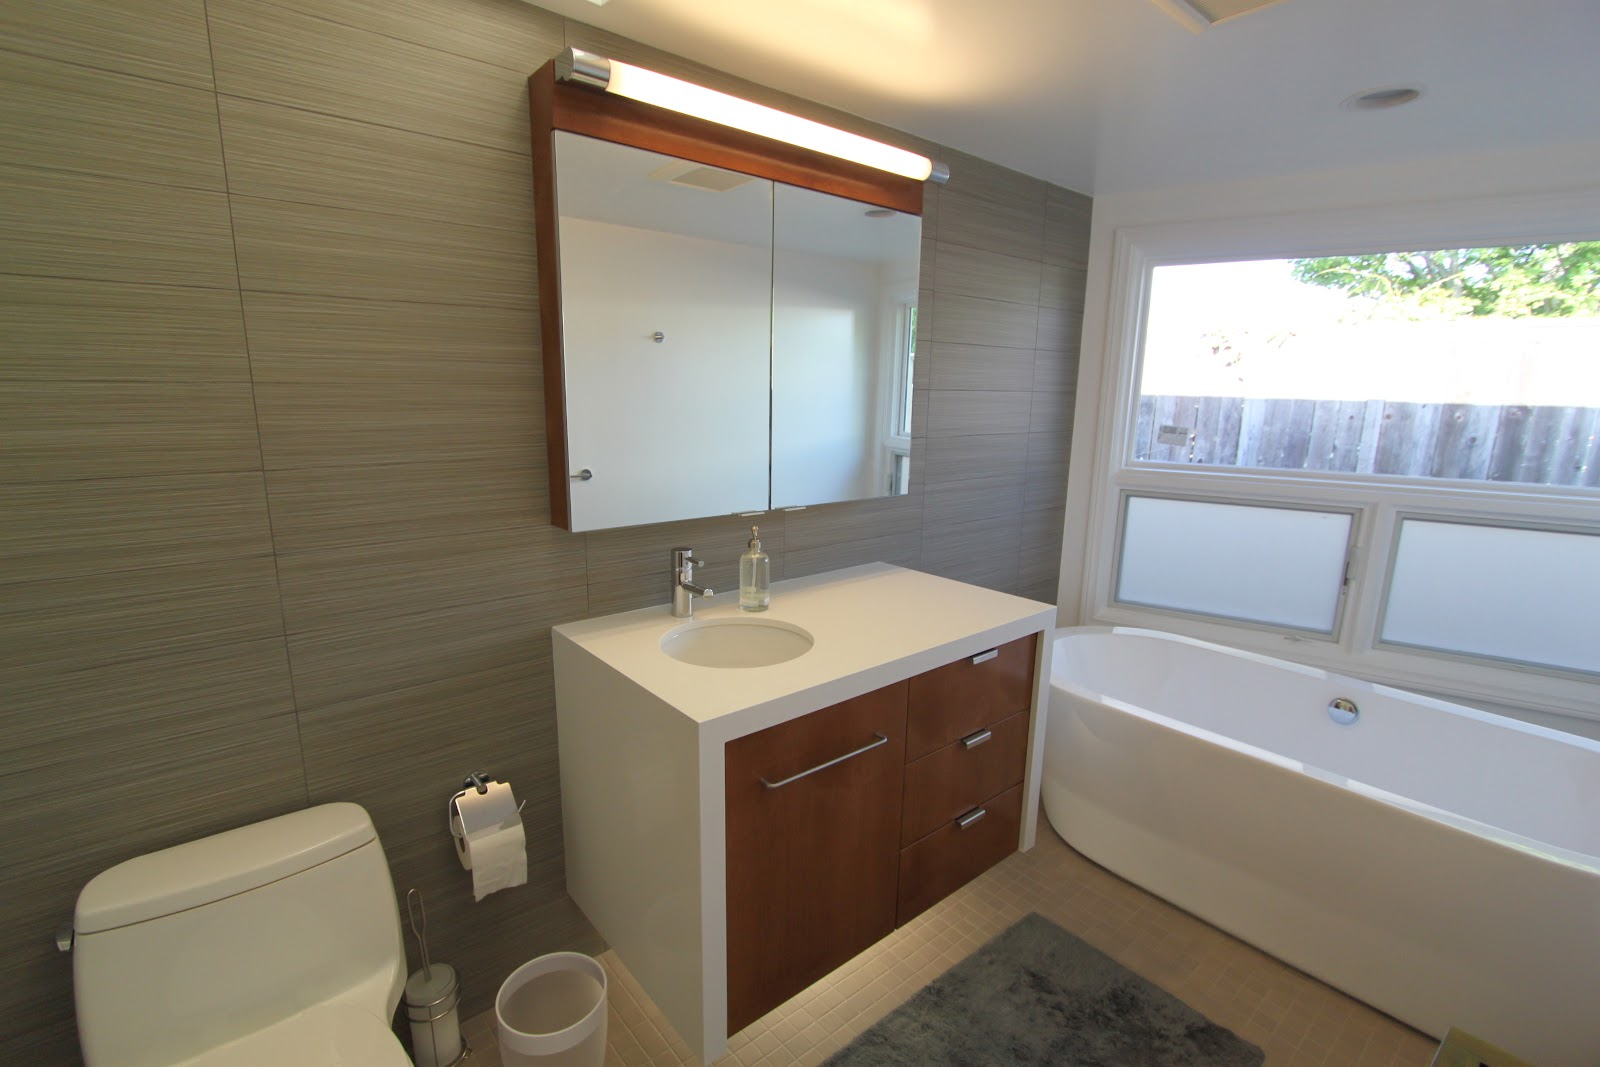 3 mid century bathrooms remodeled mid century modern remodel for Tub remodel